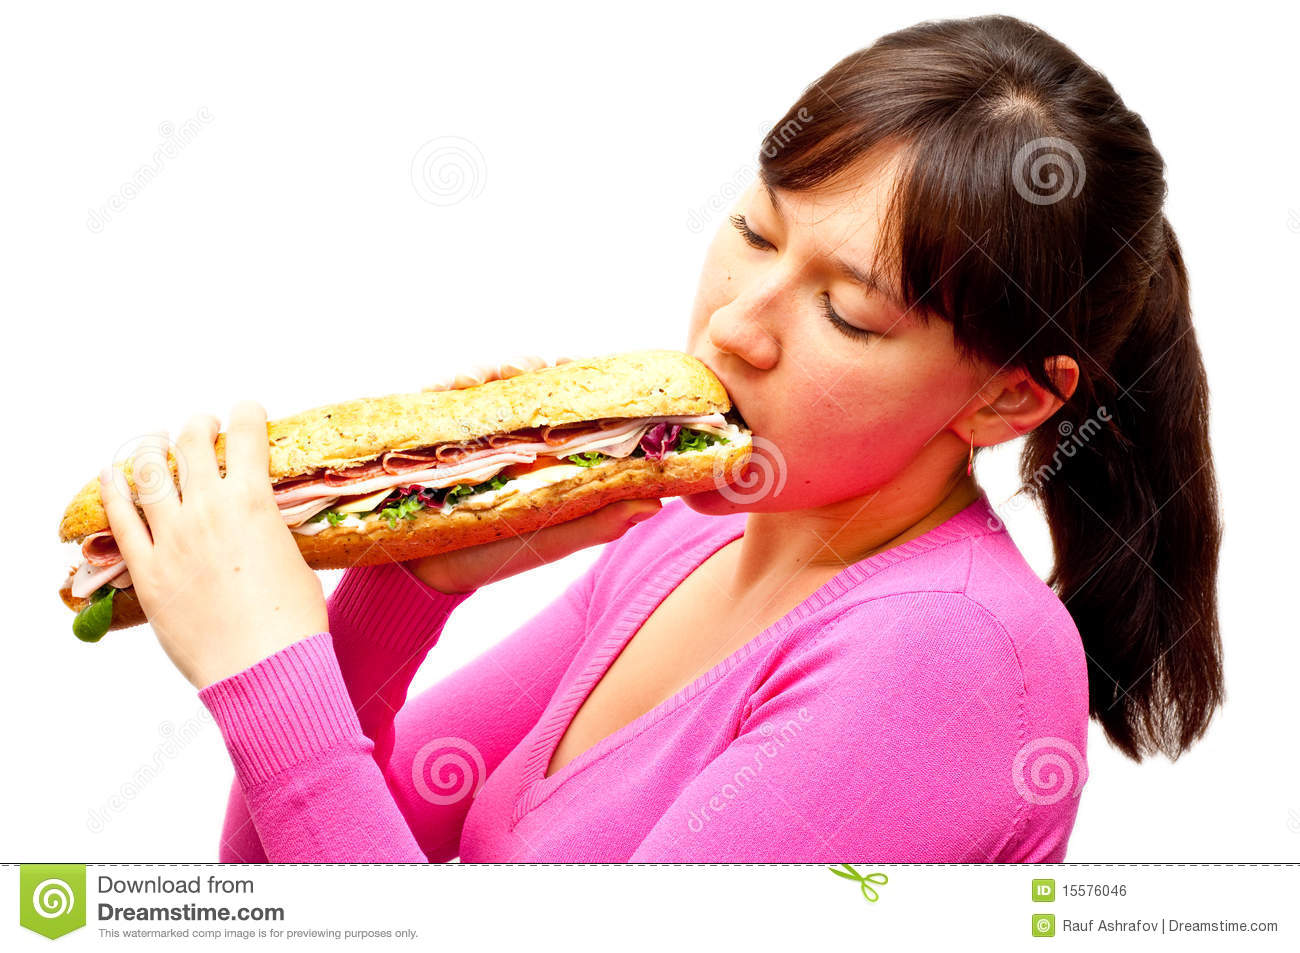 Young Woman Eating A Freshly Made Sub Sandwich Royalty Free Stock ...